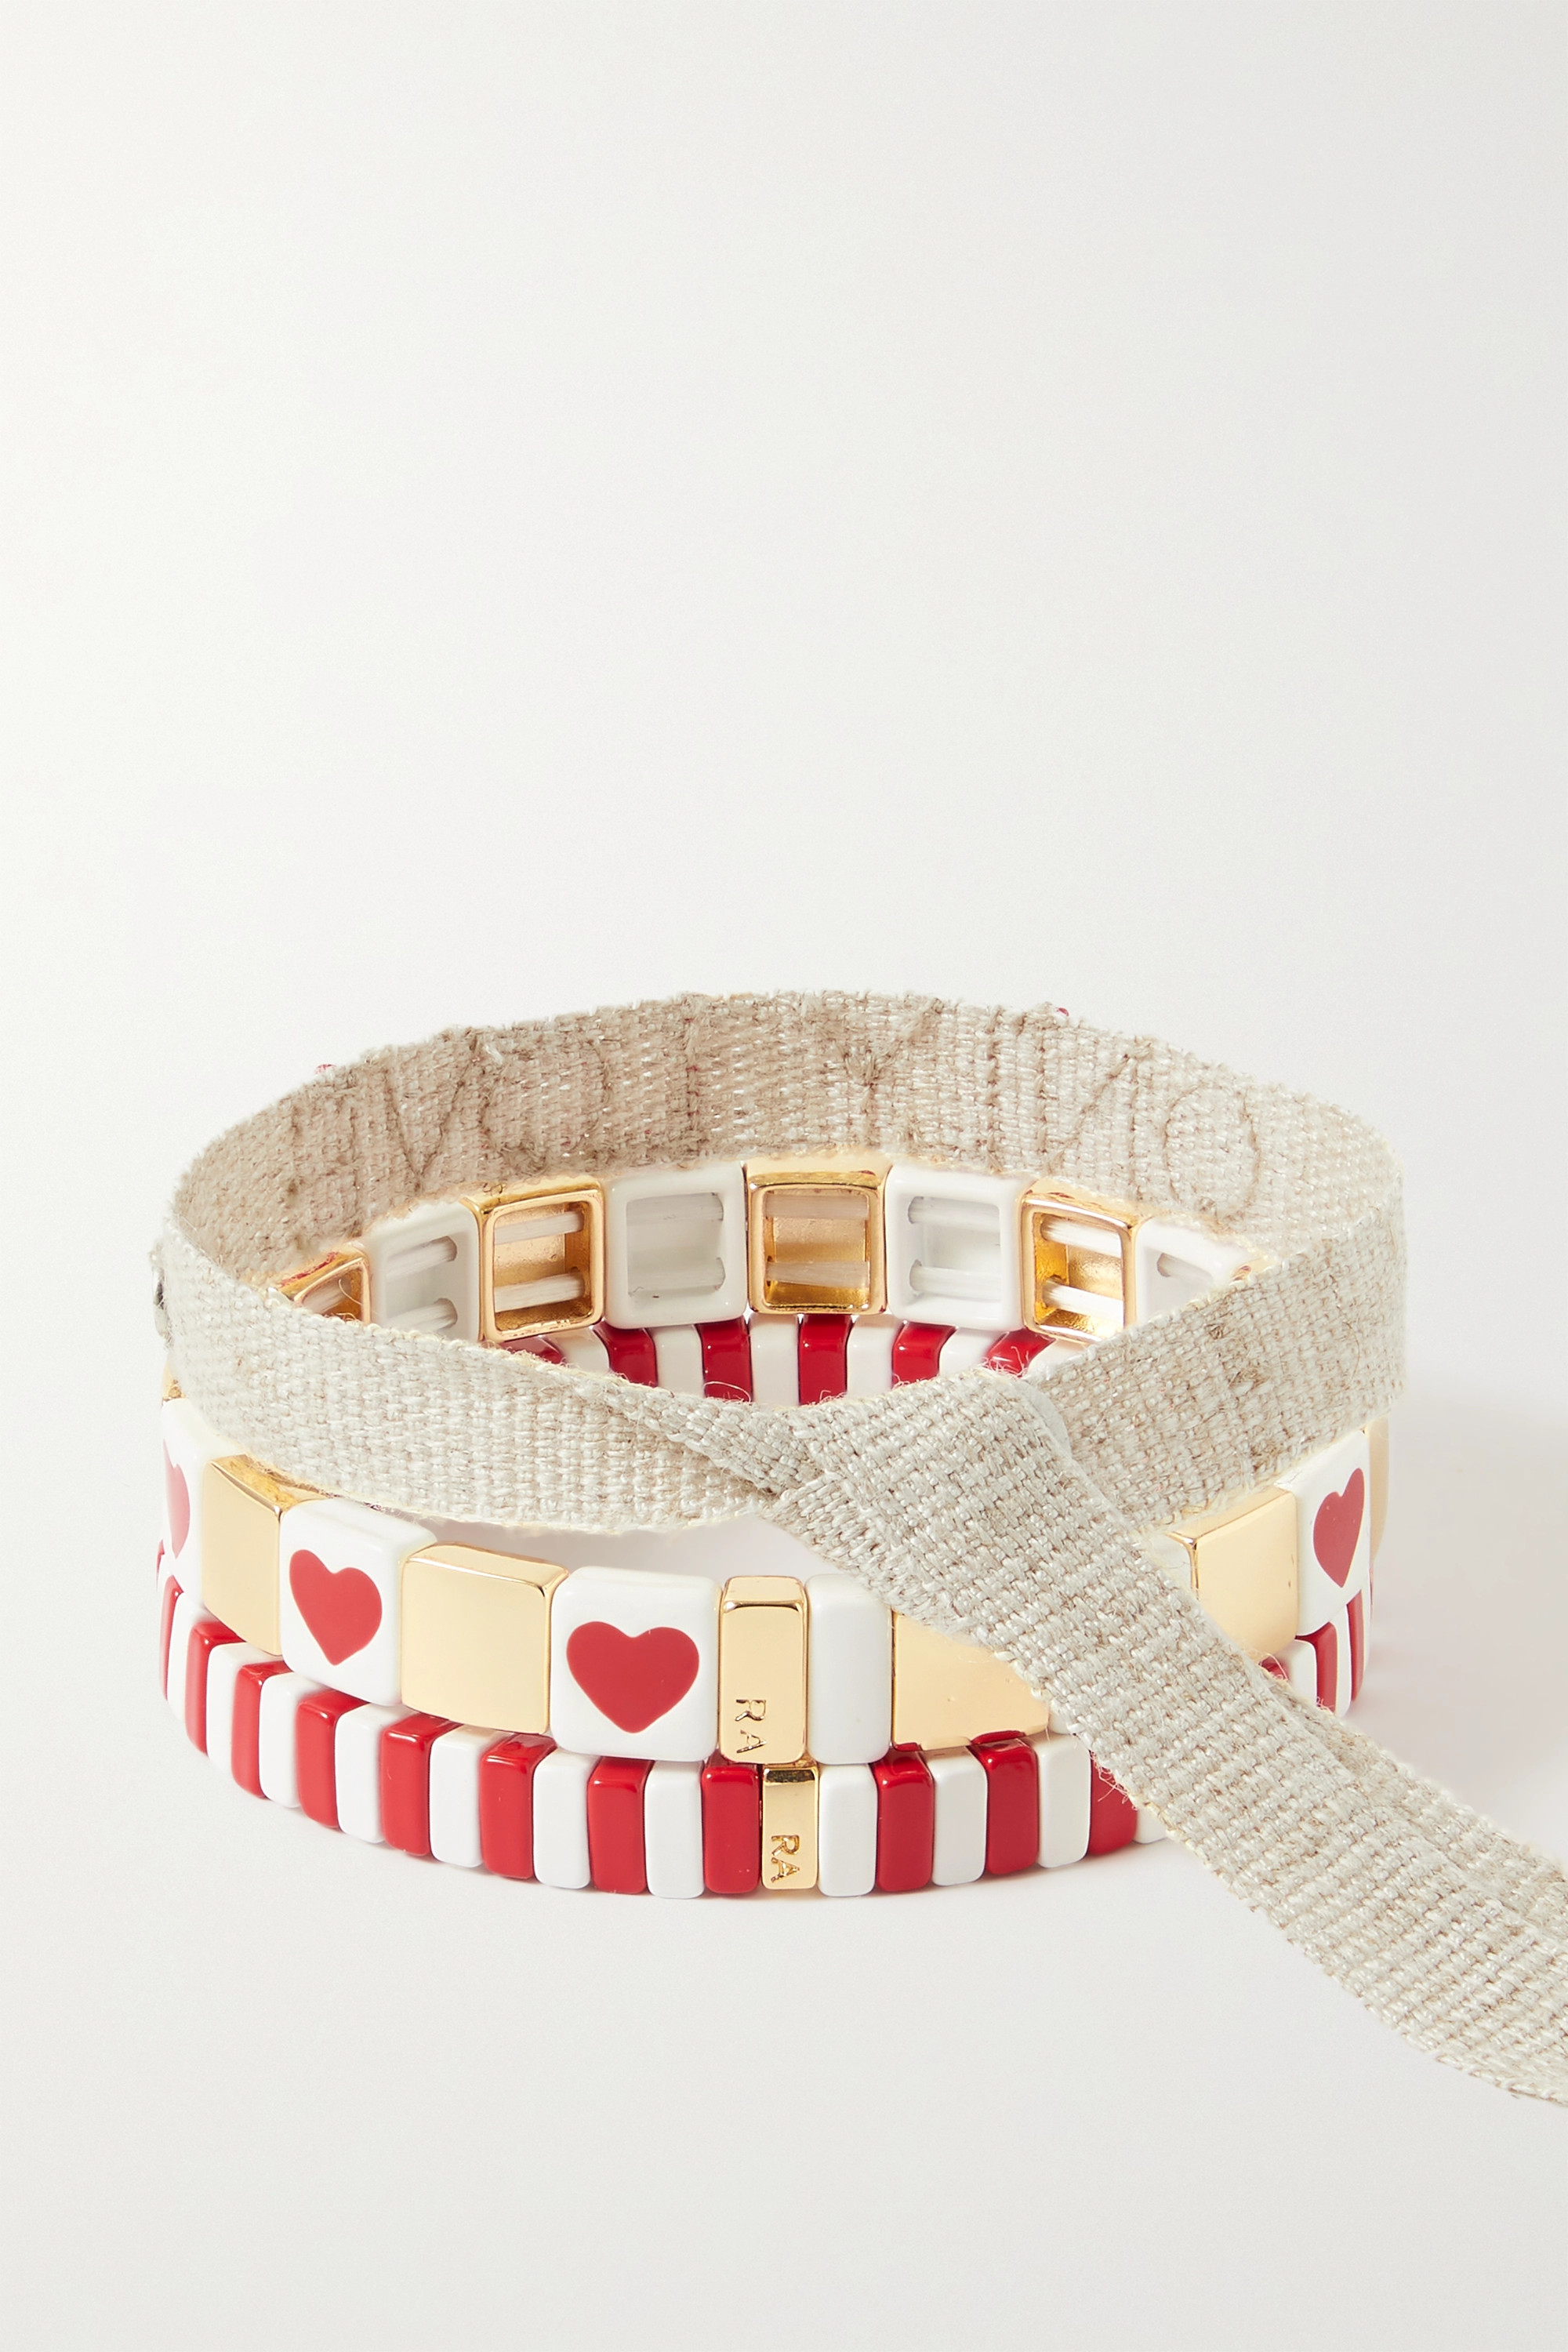 Roxanne Assoulin Only Love set of three enamel, gold-tone and canvas bracelets